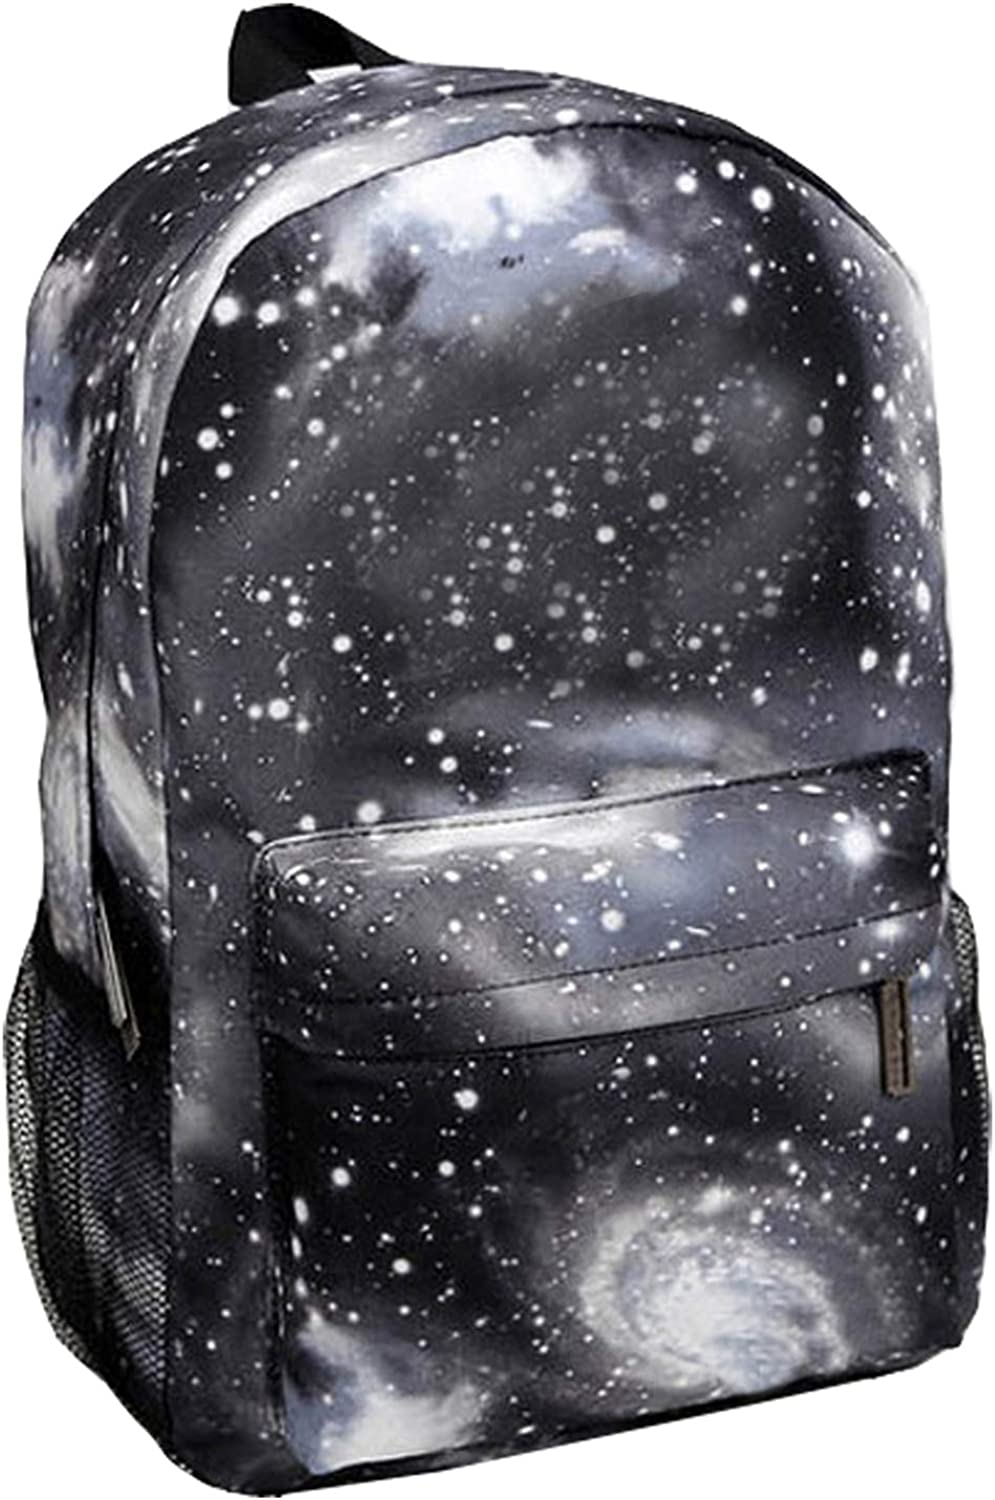 Kpop Fort Worth Mall Team Backpack Schoolbag Sky Max 52% OFF Satchel Starry